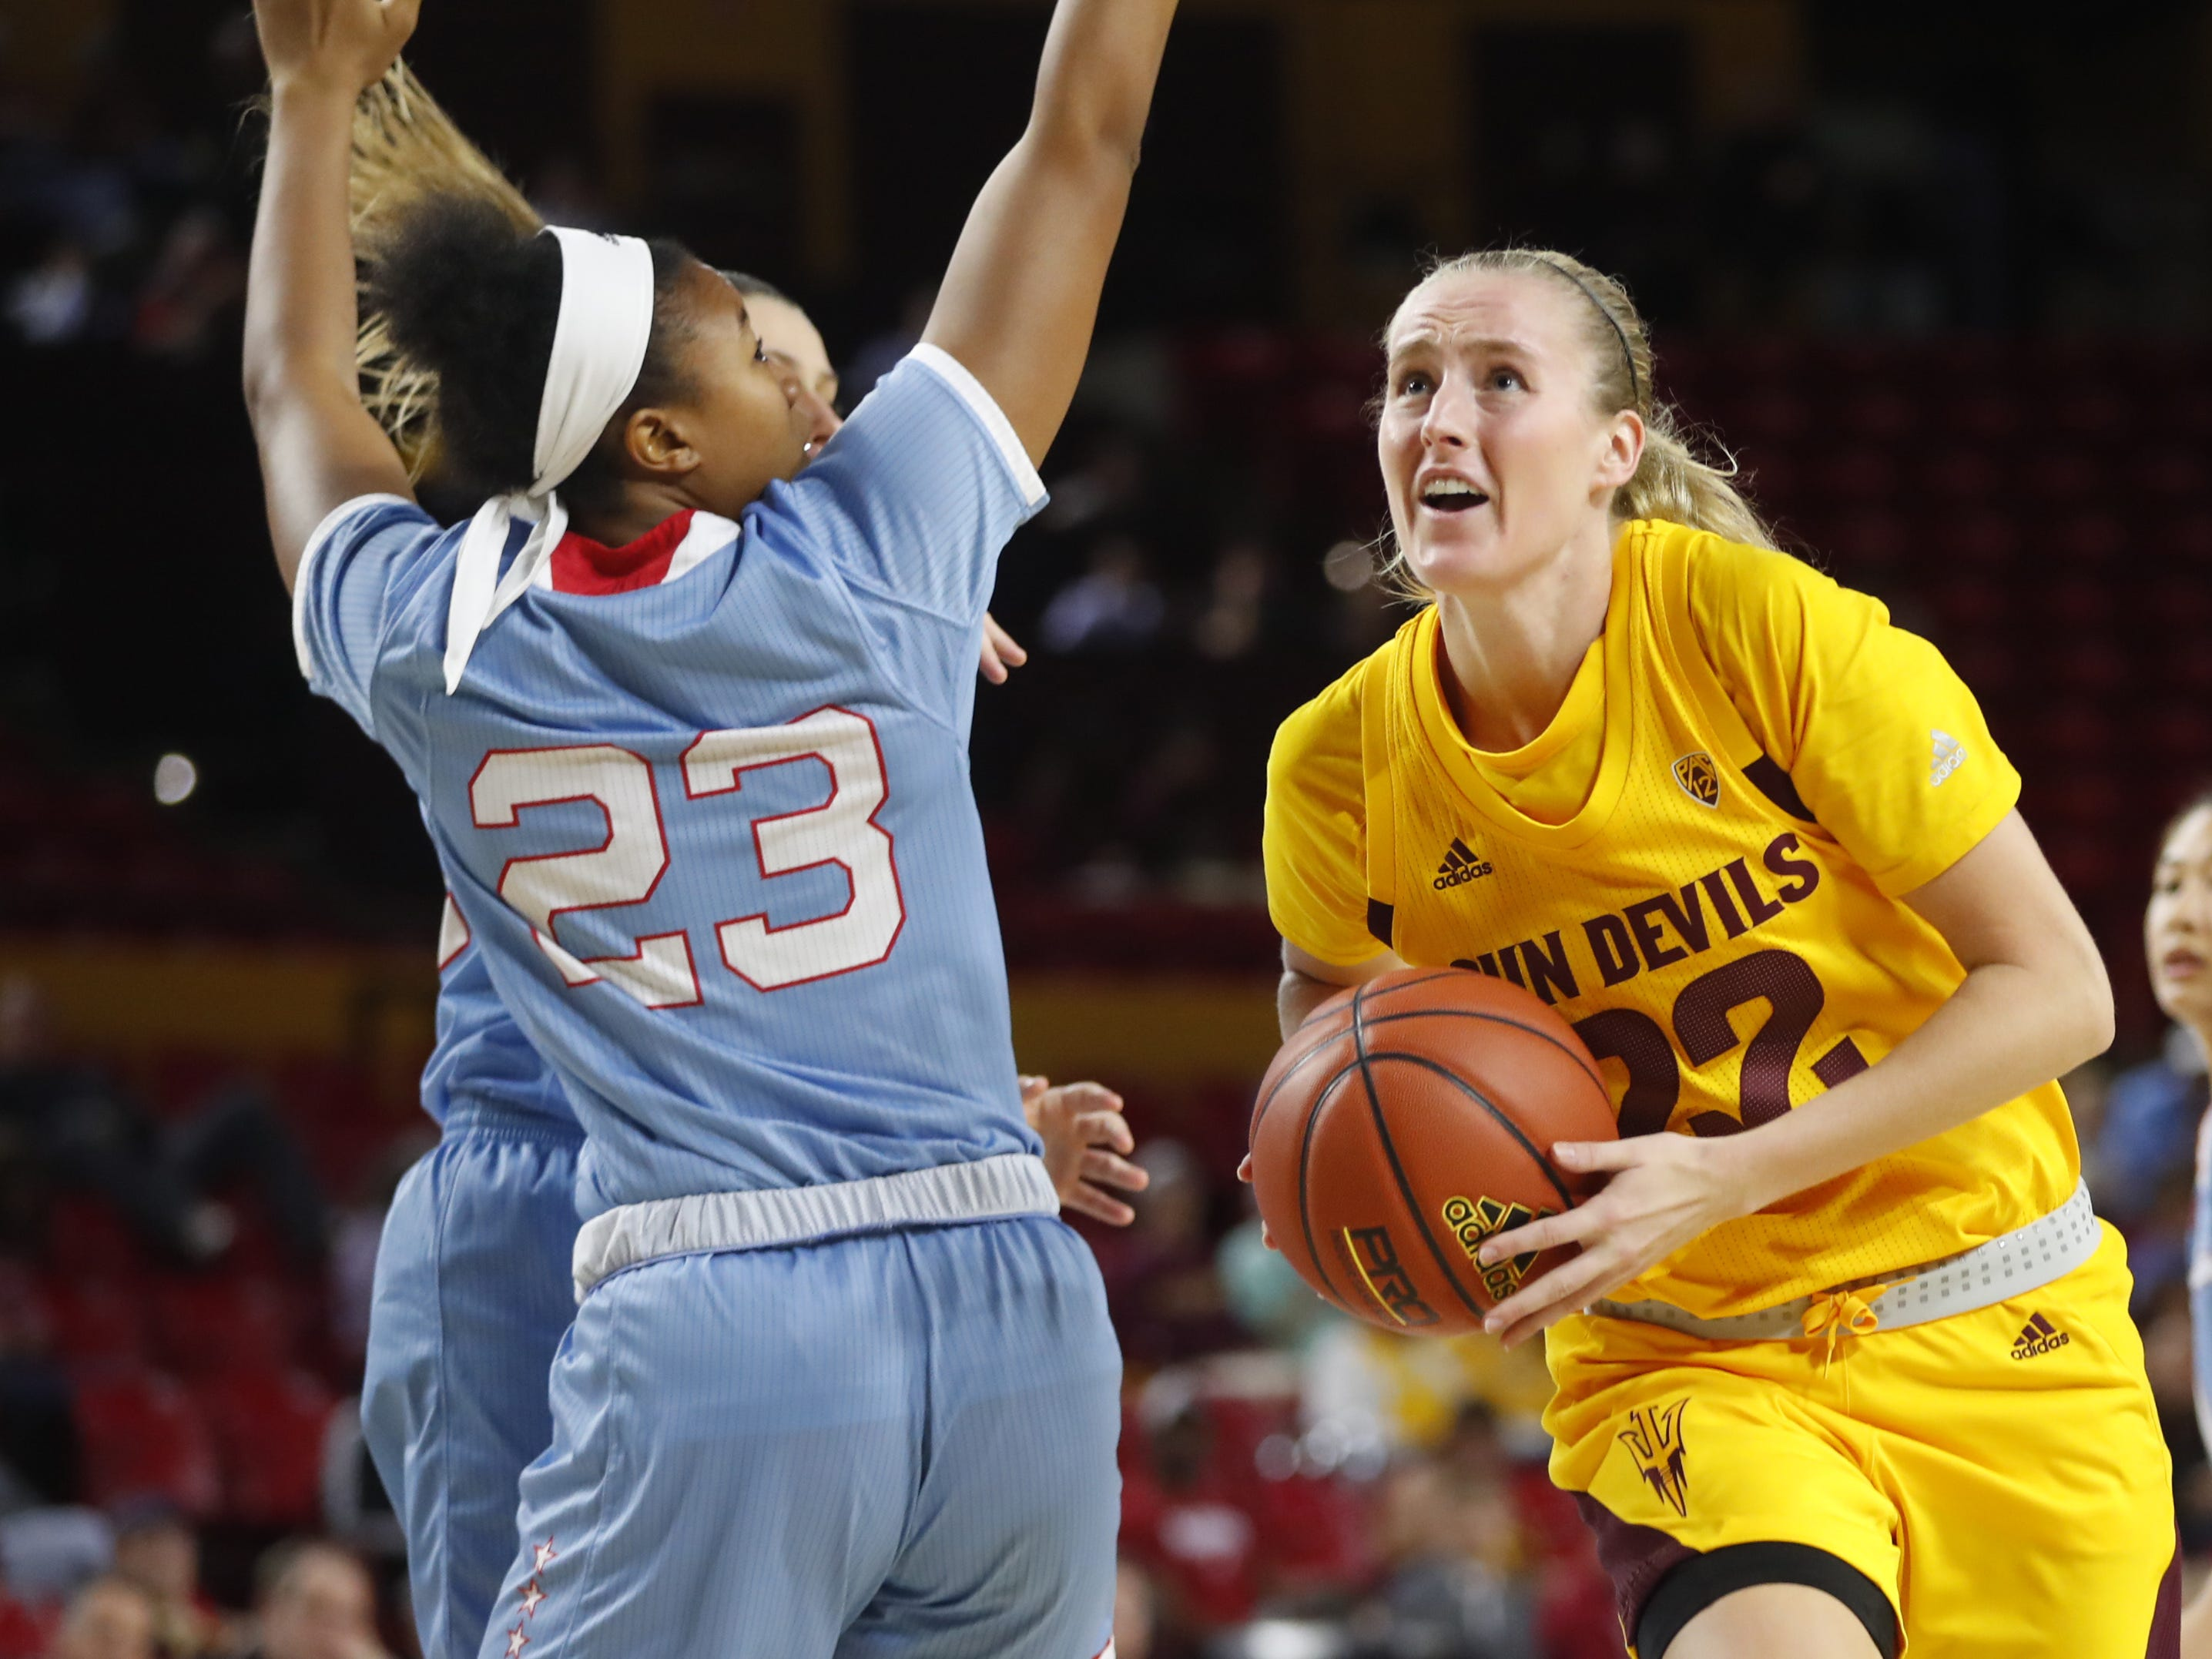 ASU's Courtney Ekmark (22) drive to the hoop against Louisiana Tech's Reauna Cleaver (23) during the second half at Wells Fargo Arena in Tempe, Ariz. on November 30, 2018.